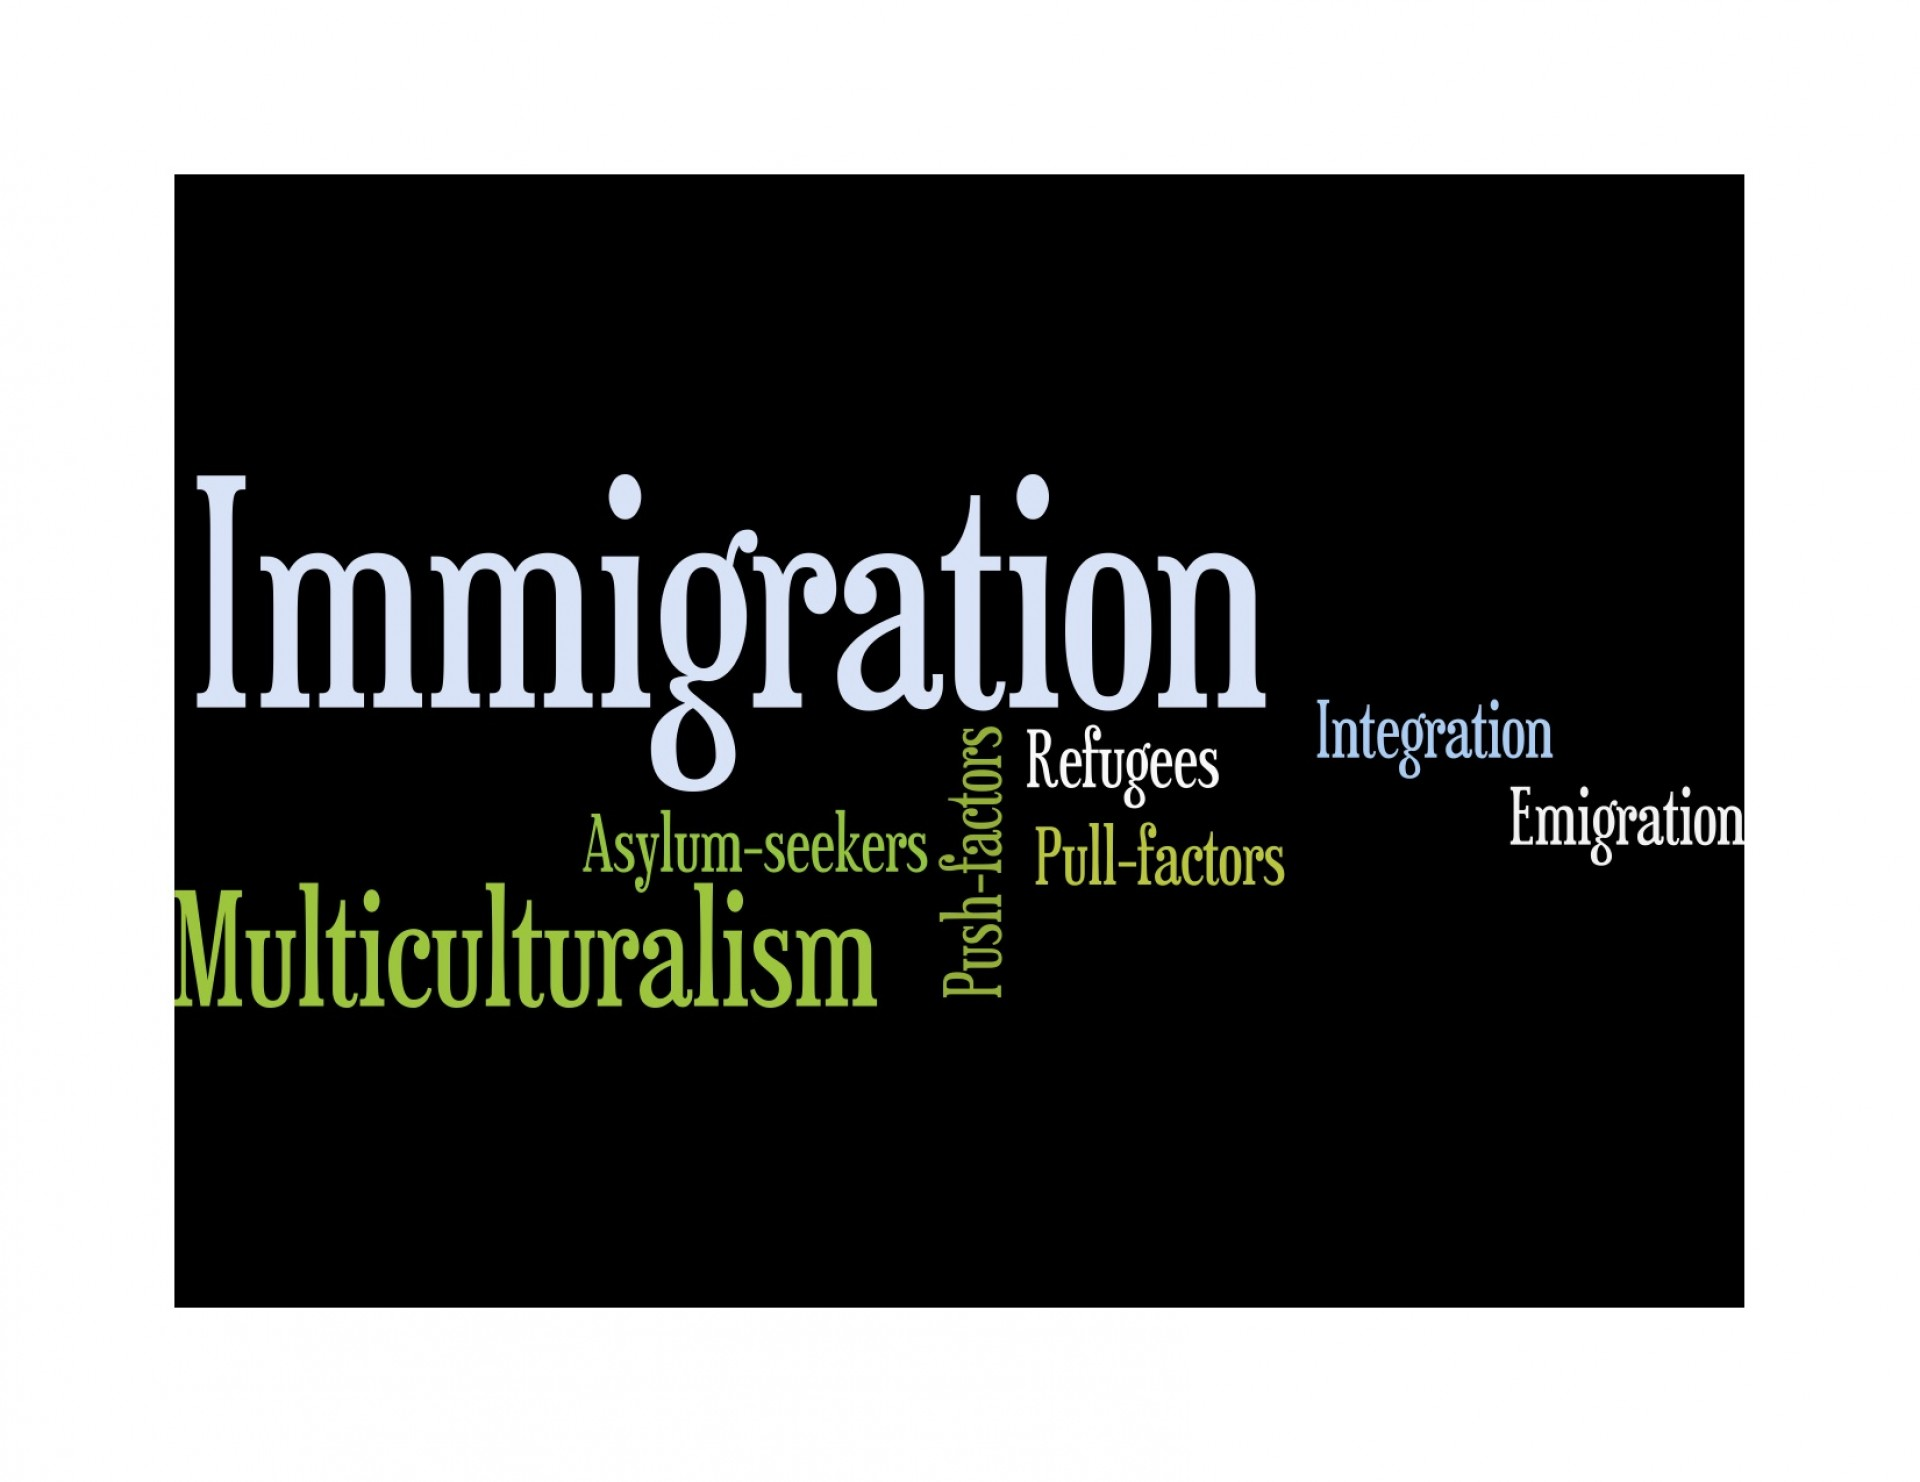 016 Immigration Essay Example Exceptional Examples Pro Argumentative Outline 1920